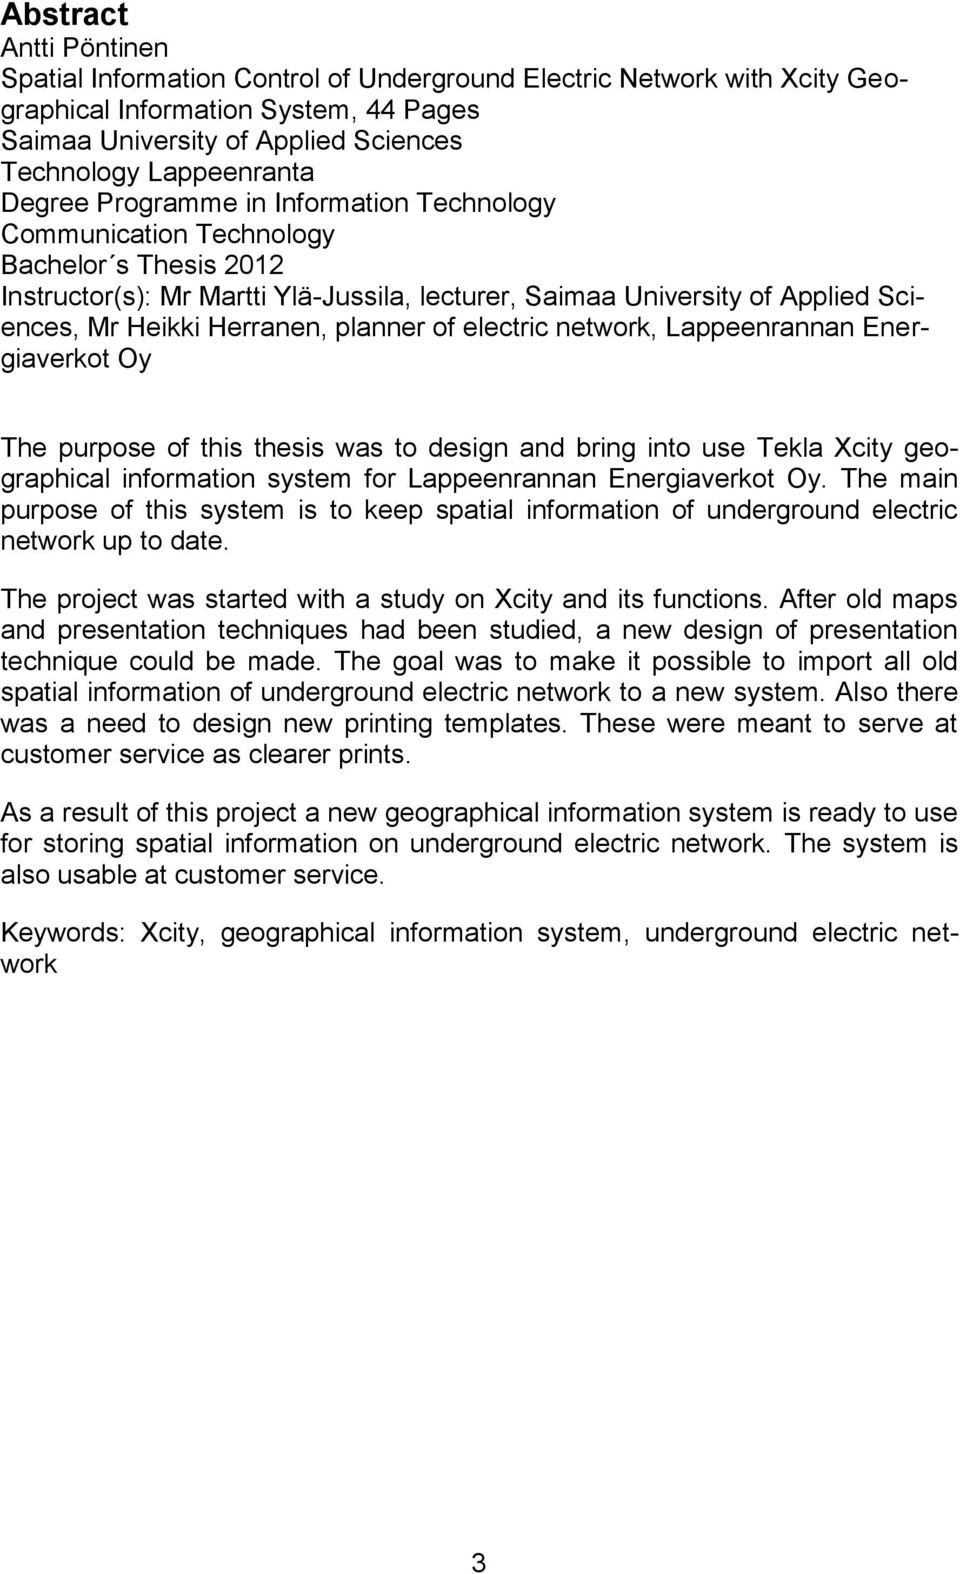 planner of electric network, Lappeenrannan Energiaverkot Oy The purpose of this thesis was to design and bring into use Tekla Xcity geographical information system for Lappeenrannan Energiaverkot Oy.